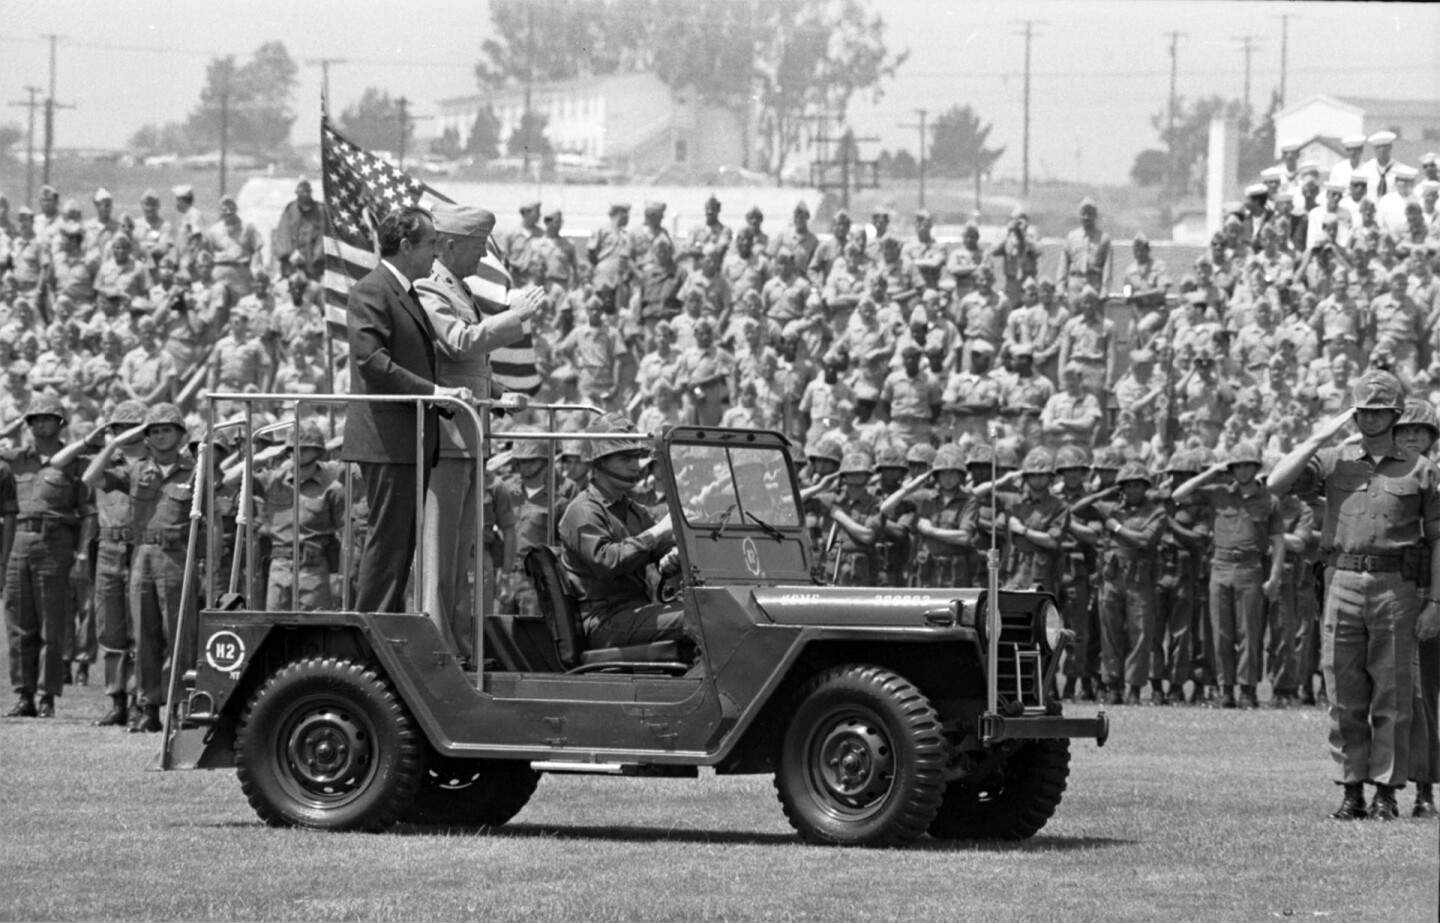 President Nixon reviews the troops at Camp Pendleton, 1971